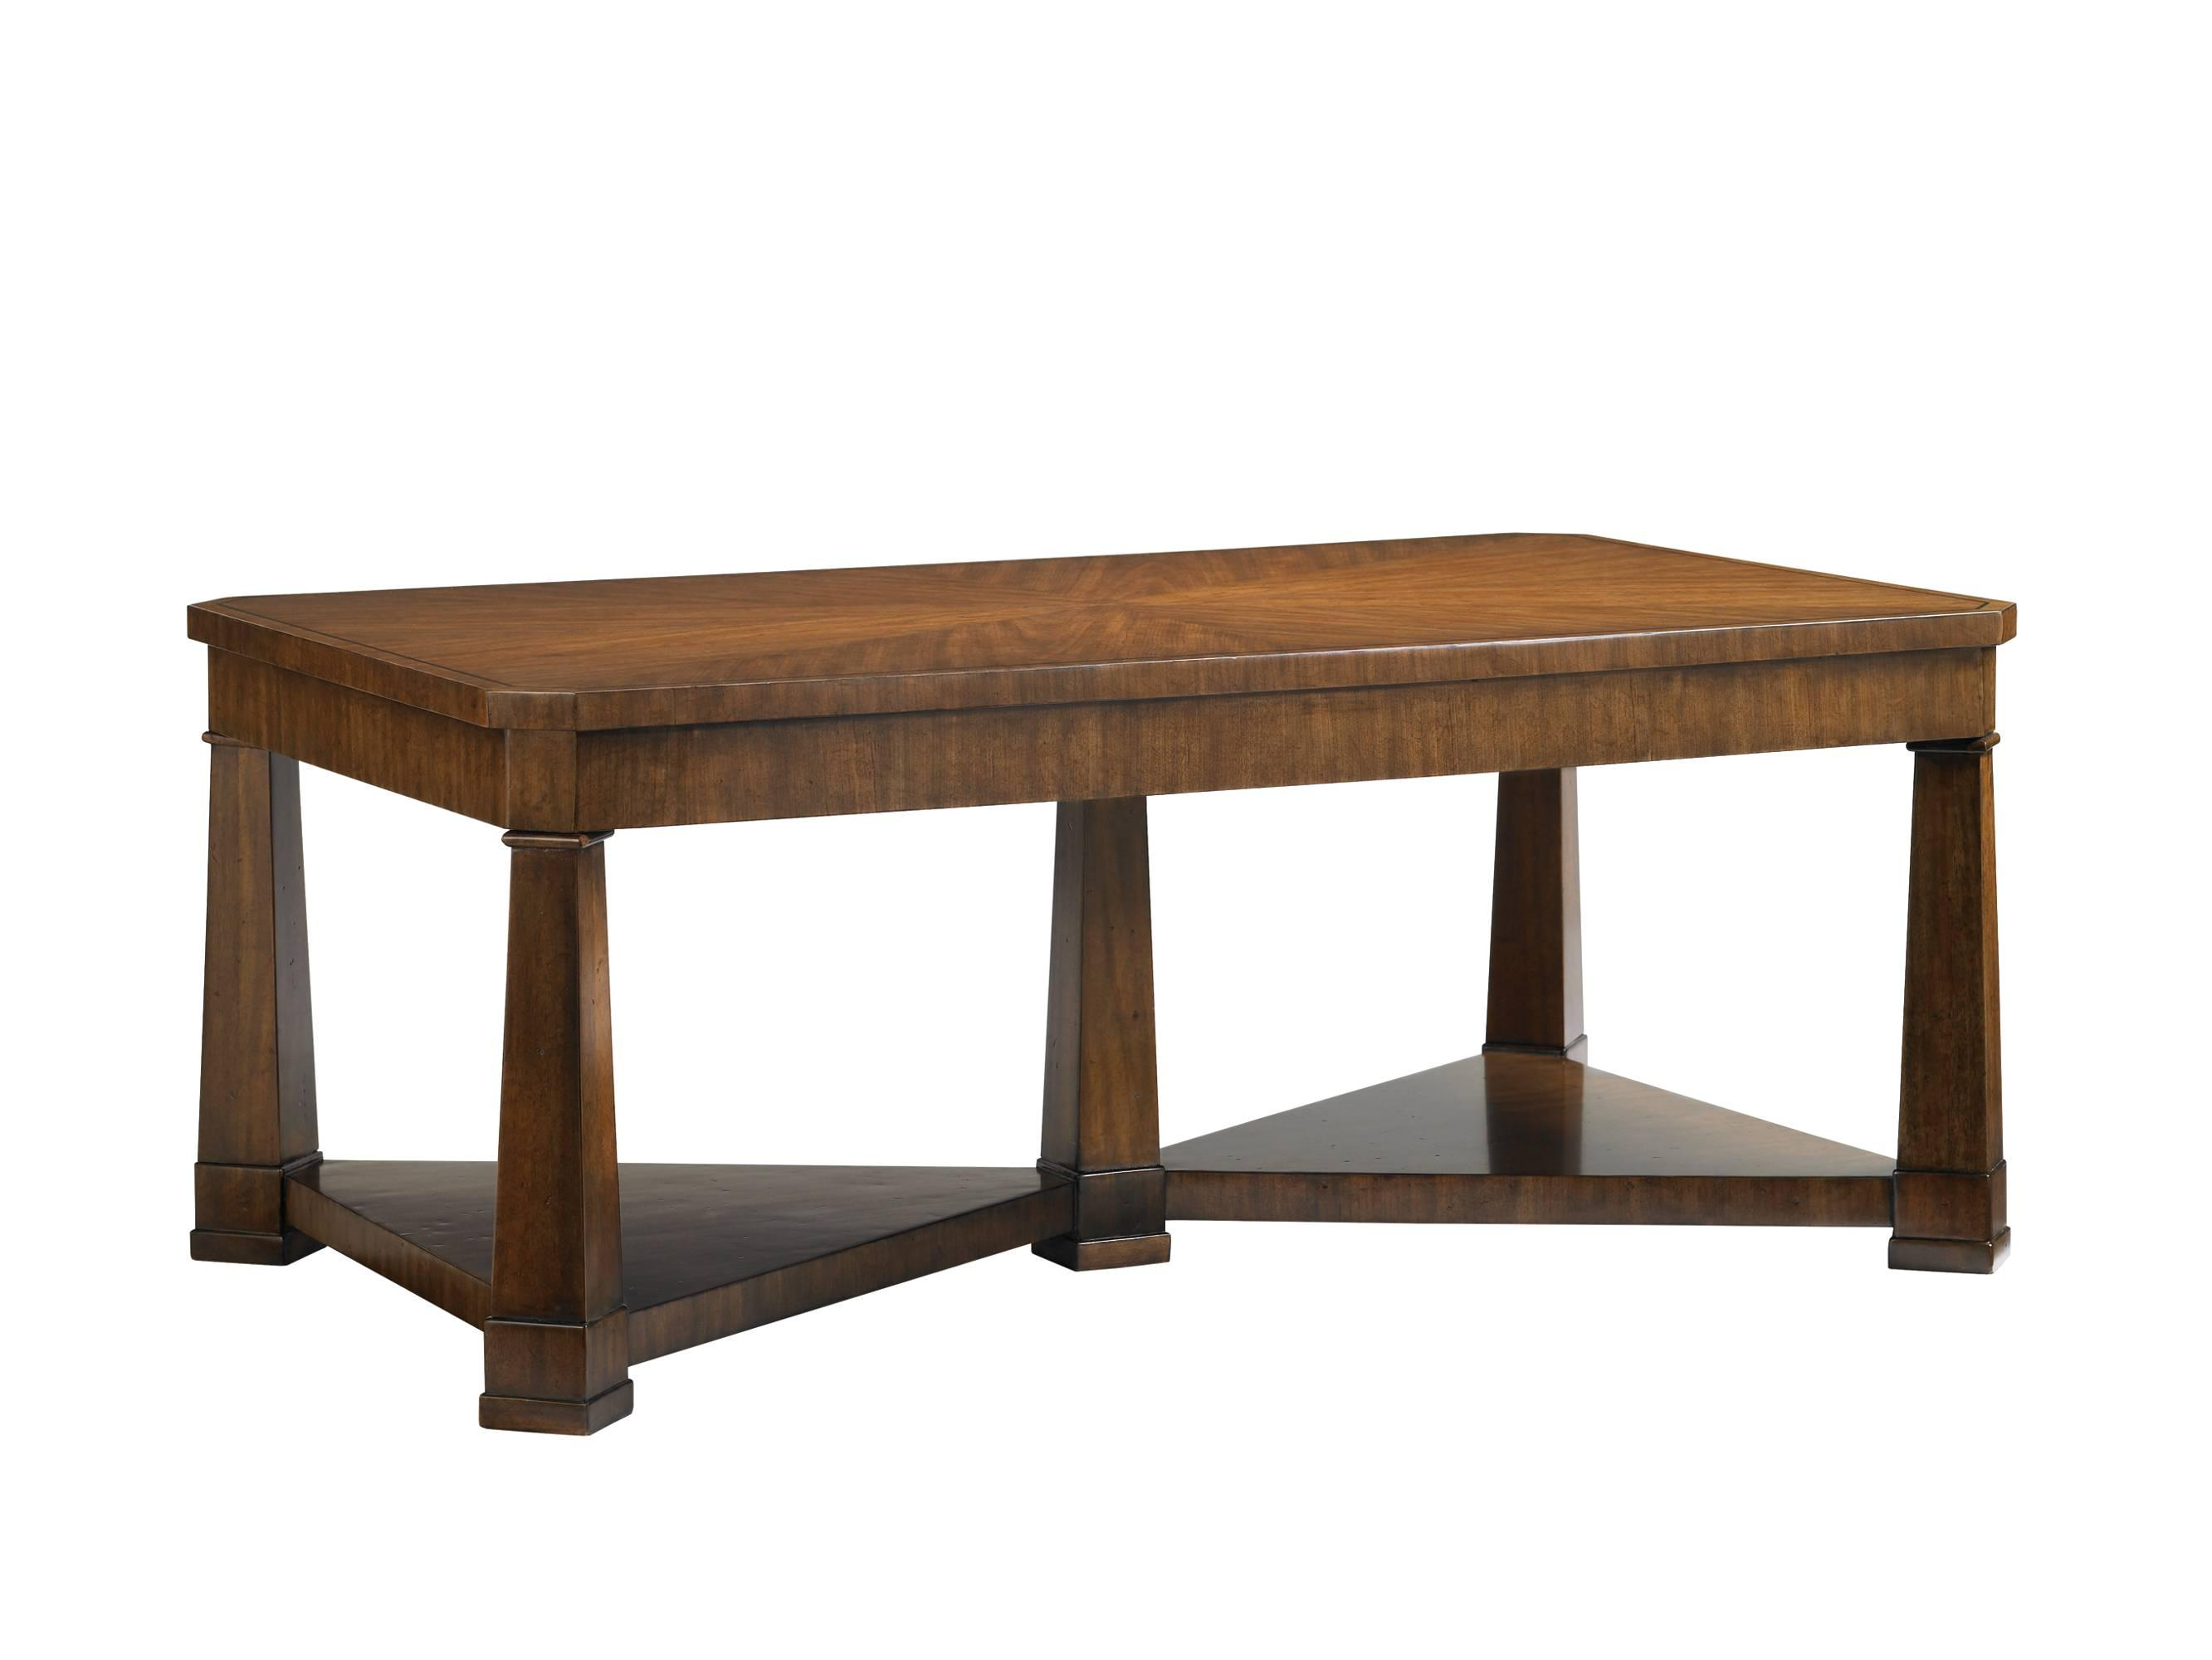 Stanley Furniture Fairfax Rectangular Cocktail Table - Item Number: 321-15-01